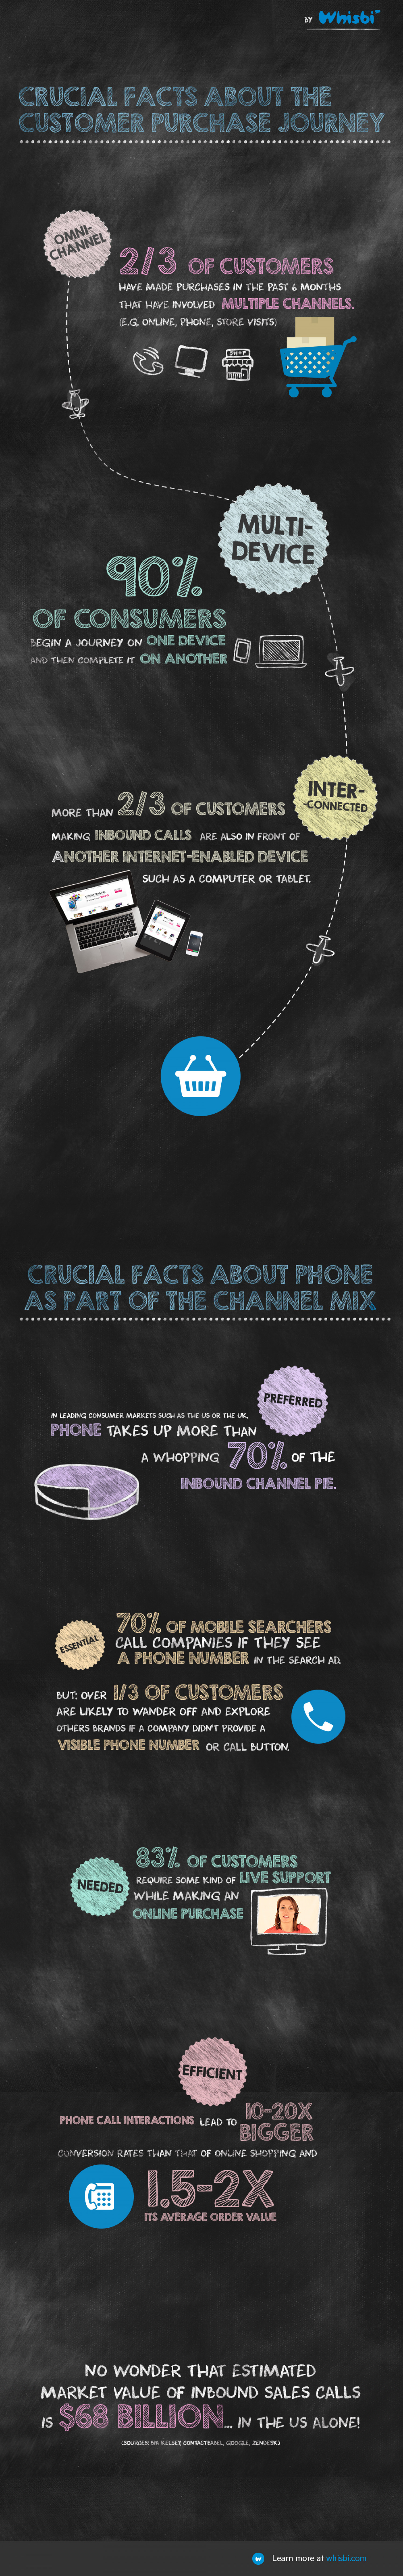 The New Omnichannel Purchase Journey and the Crucial Role of Phone Infographic